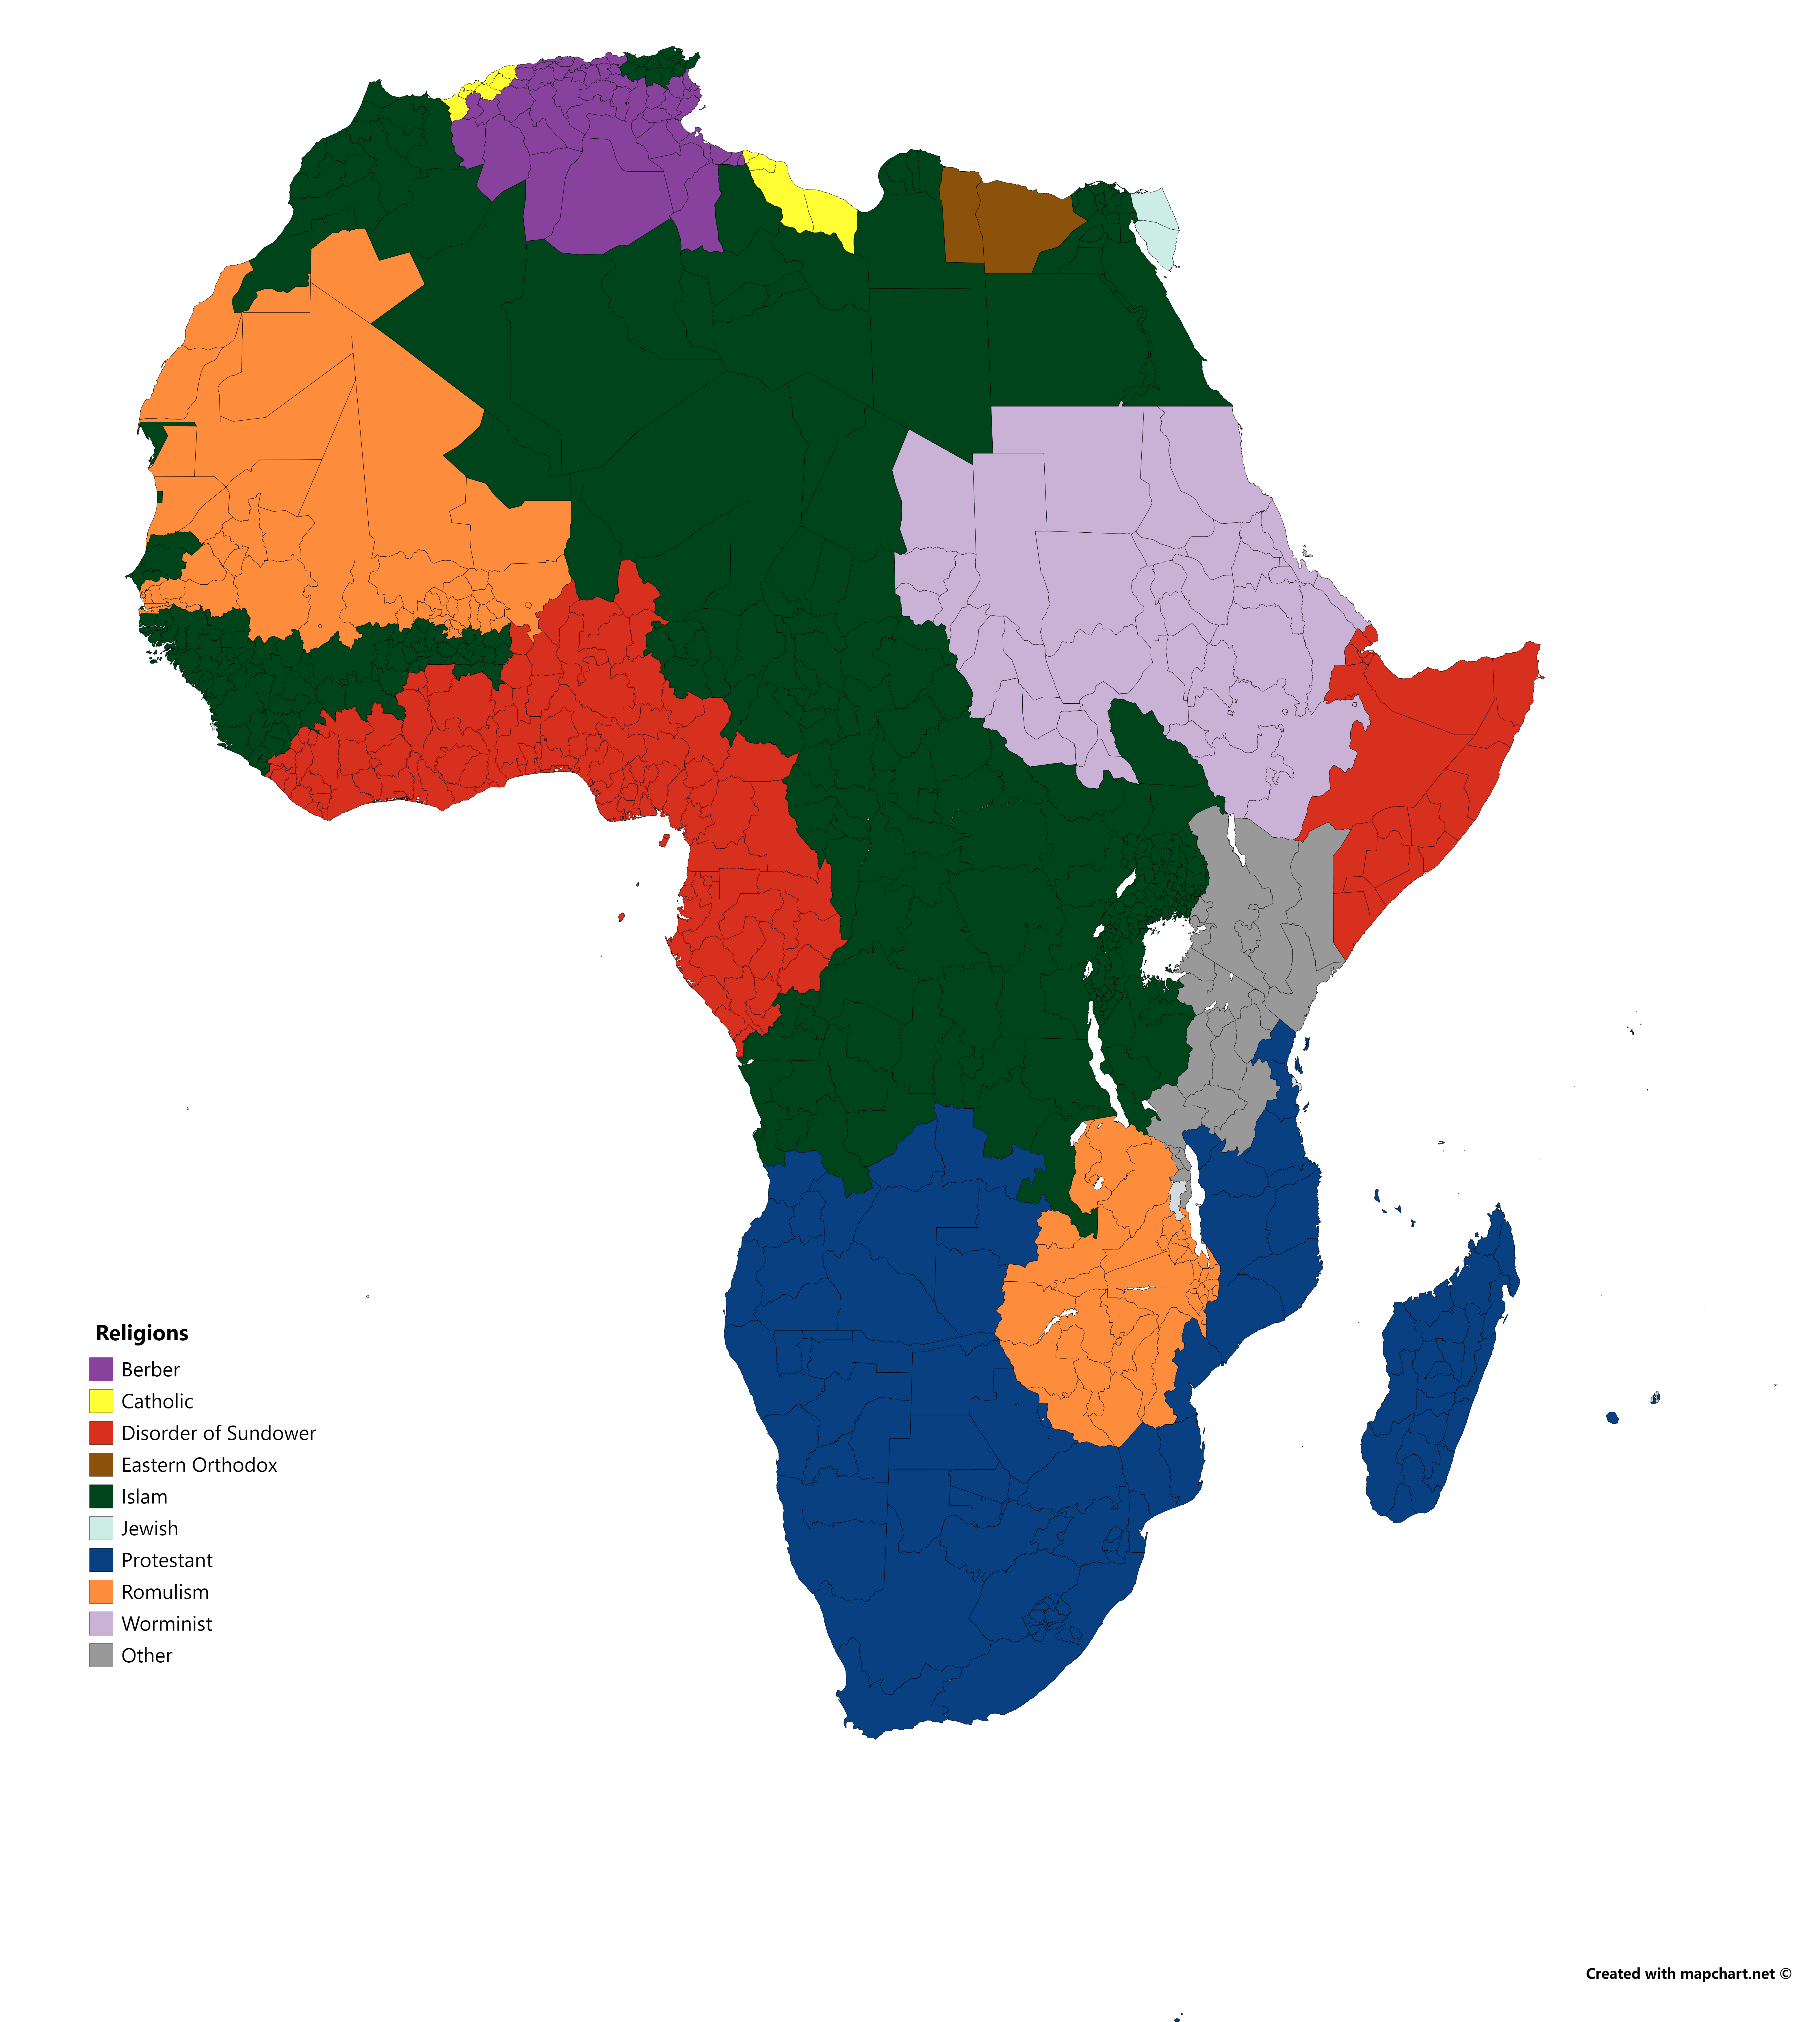 AfricaReligions.png